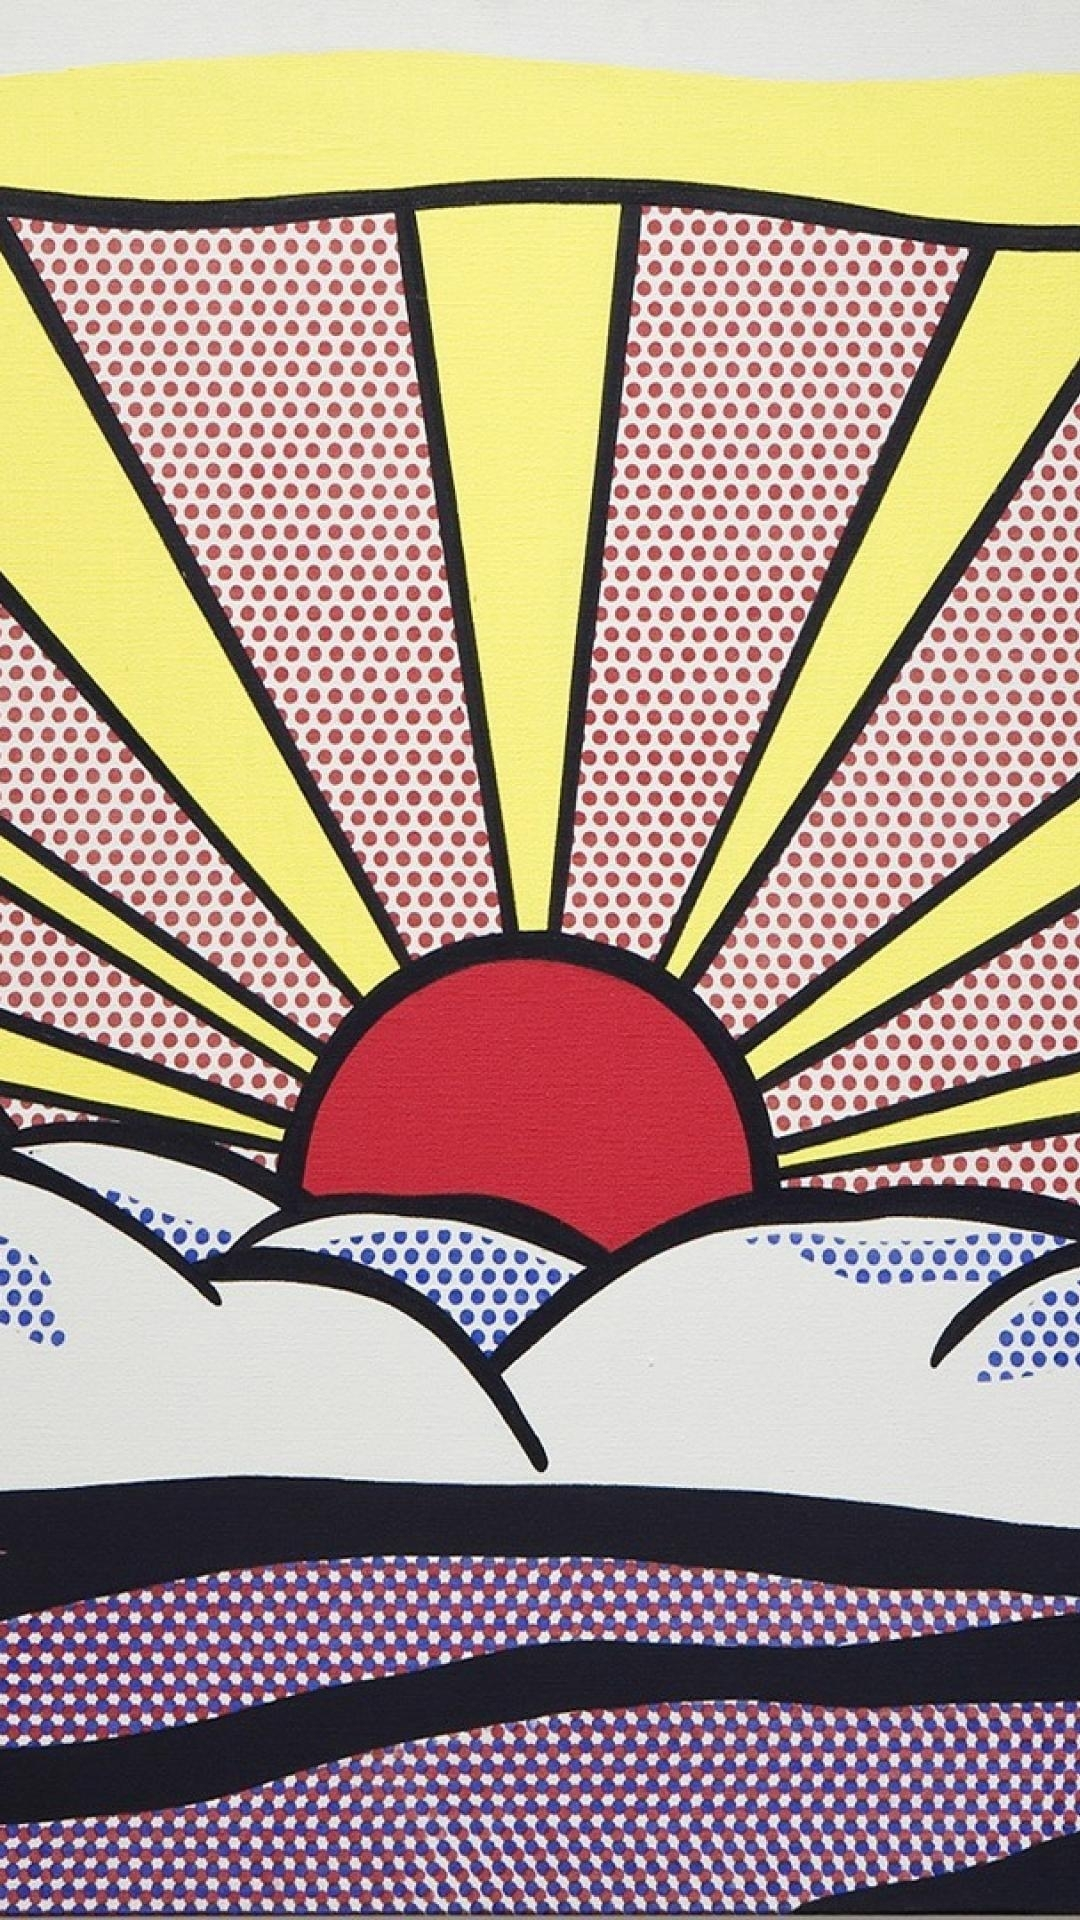 roy lichtenstein artwork paintings pop art sunrise wallpaper | (87626)